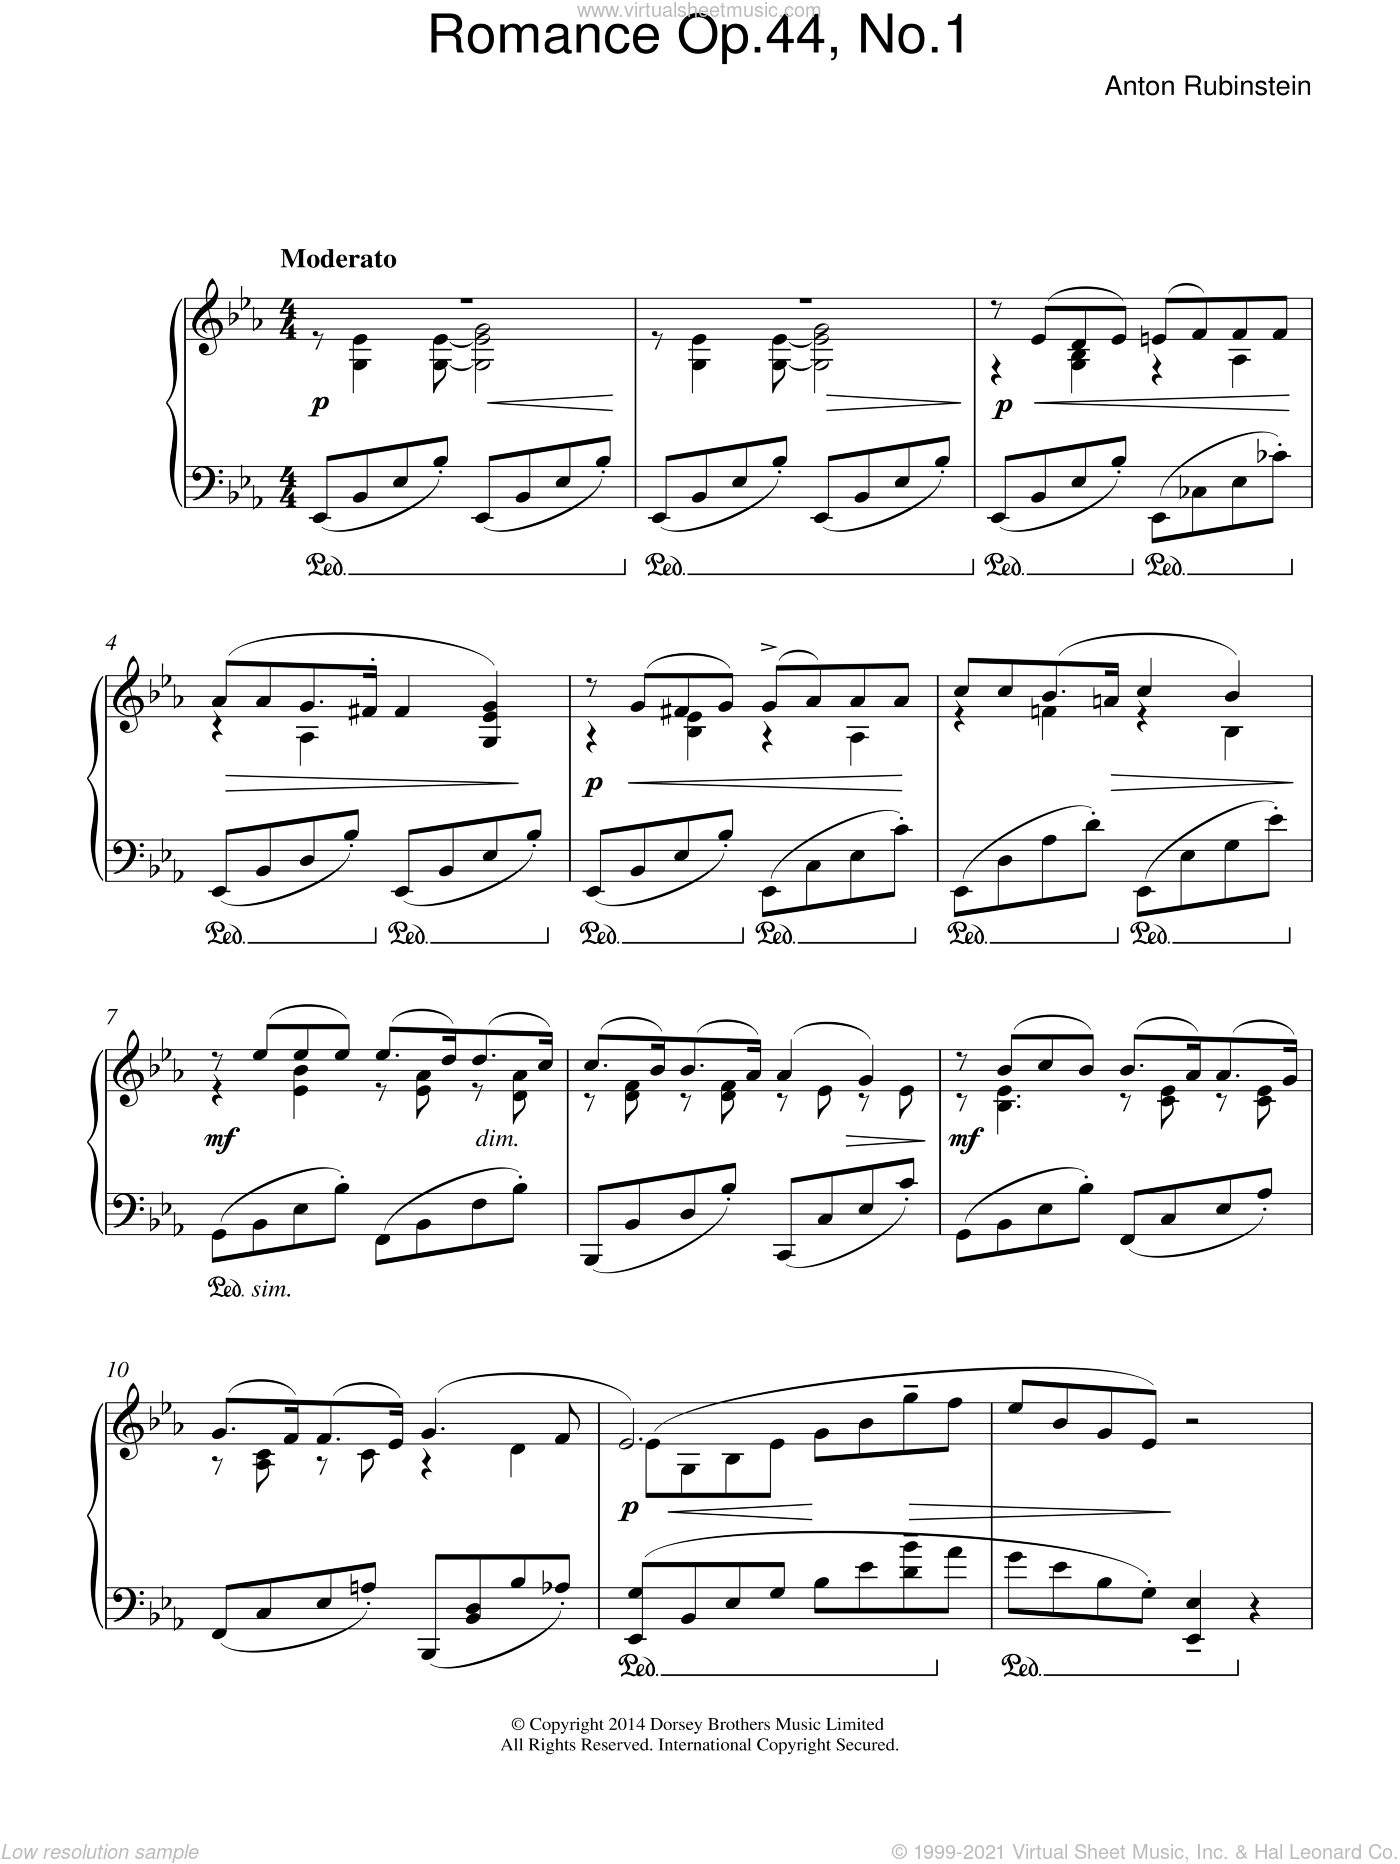 Romance, Op.44 No. 1 sheet music for piano solo by Anton Rubinstein, classical score, intermediate skill level